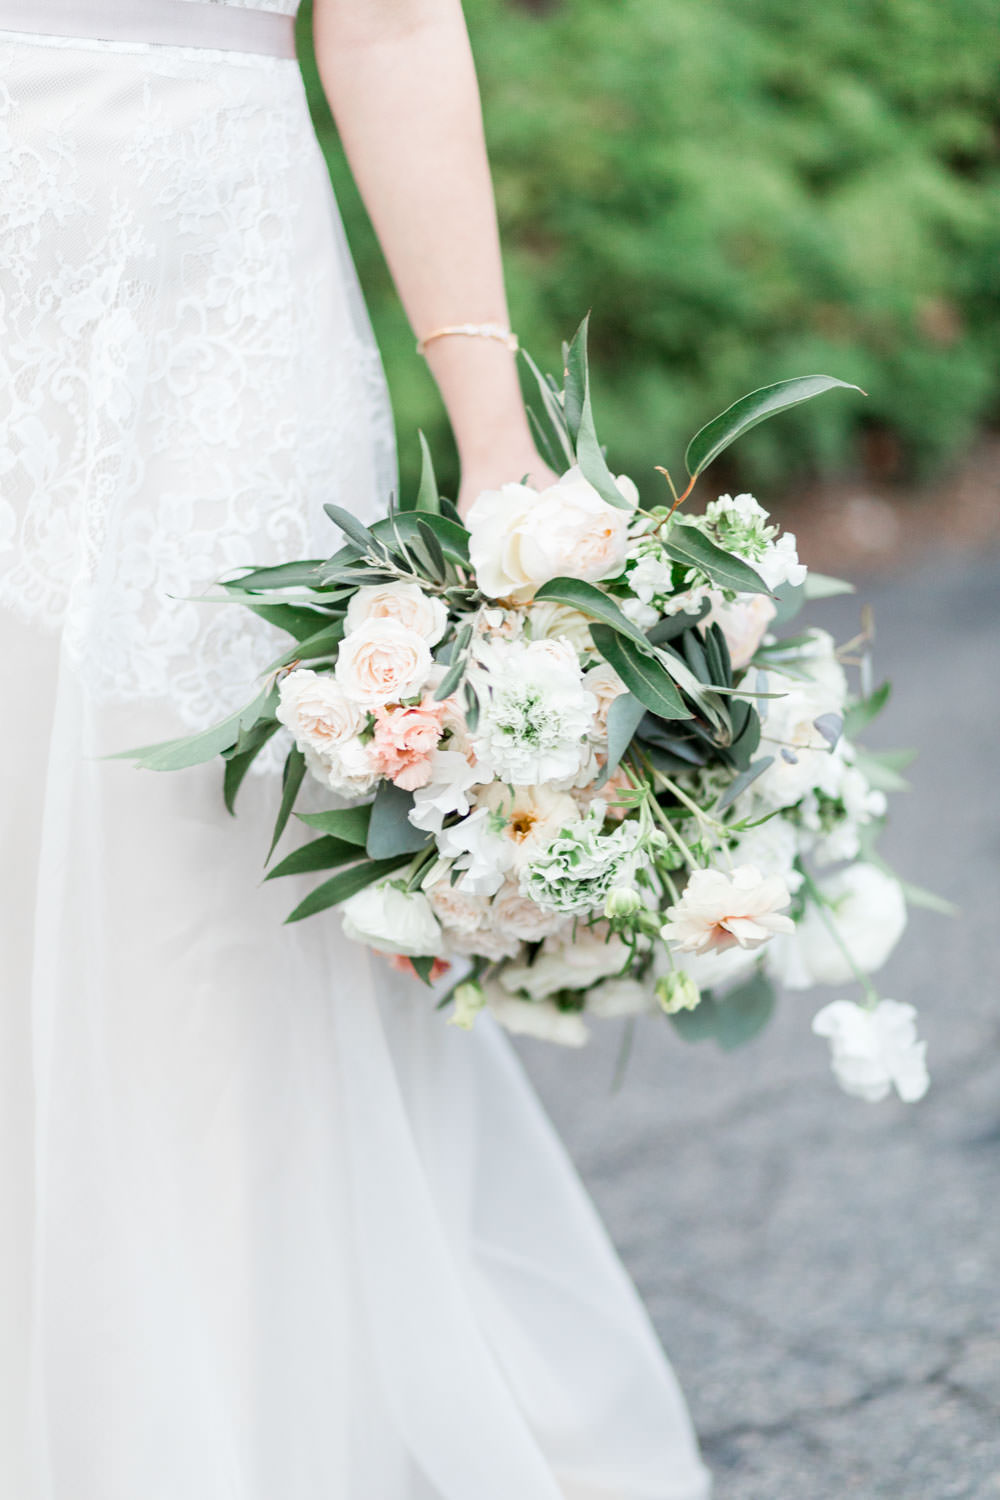 Bride and groom portrait at Ethereal Open Air Resort, Anais Anette lace sleeveless gown with white and green bouquet, Cavin Elizabeth Photography